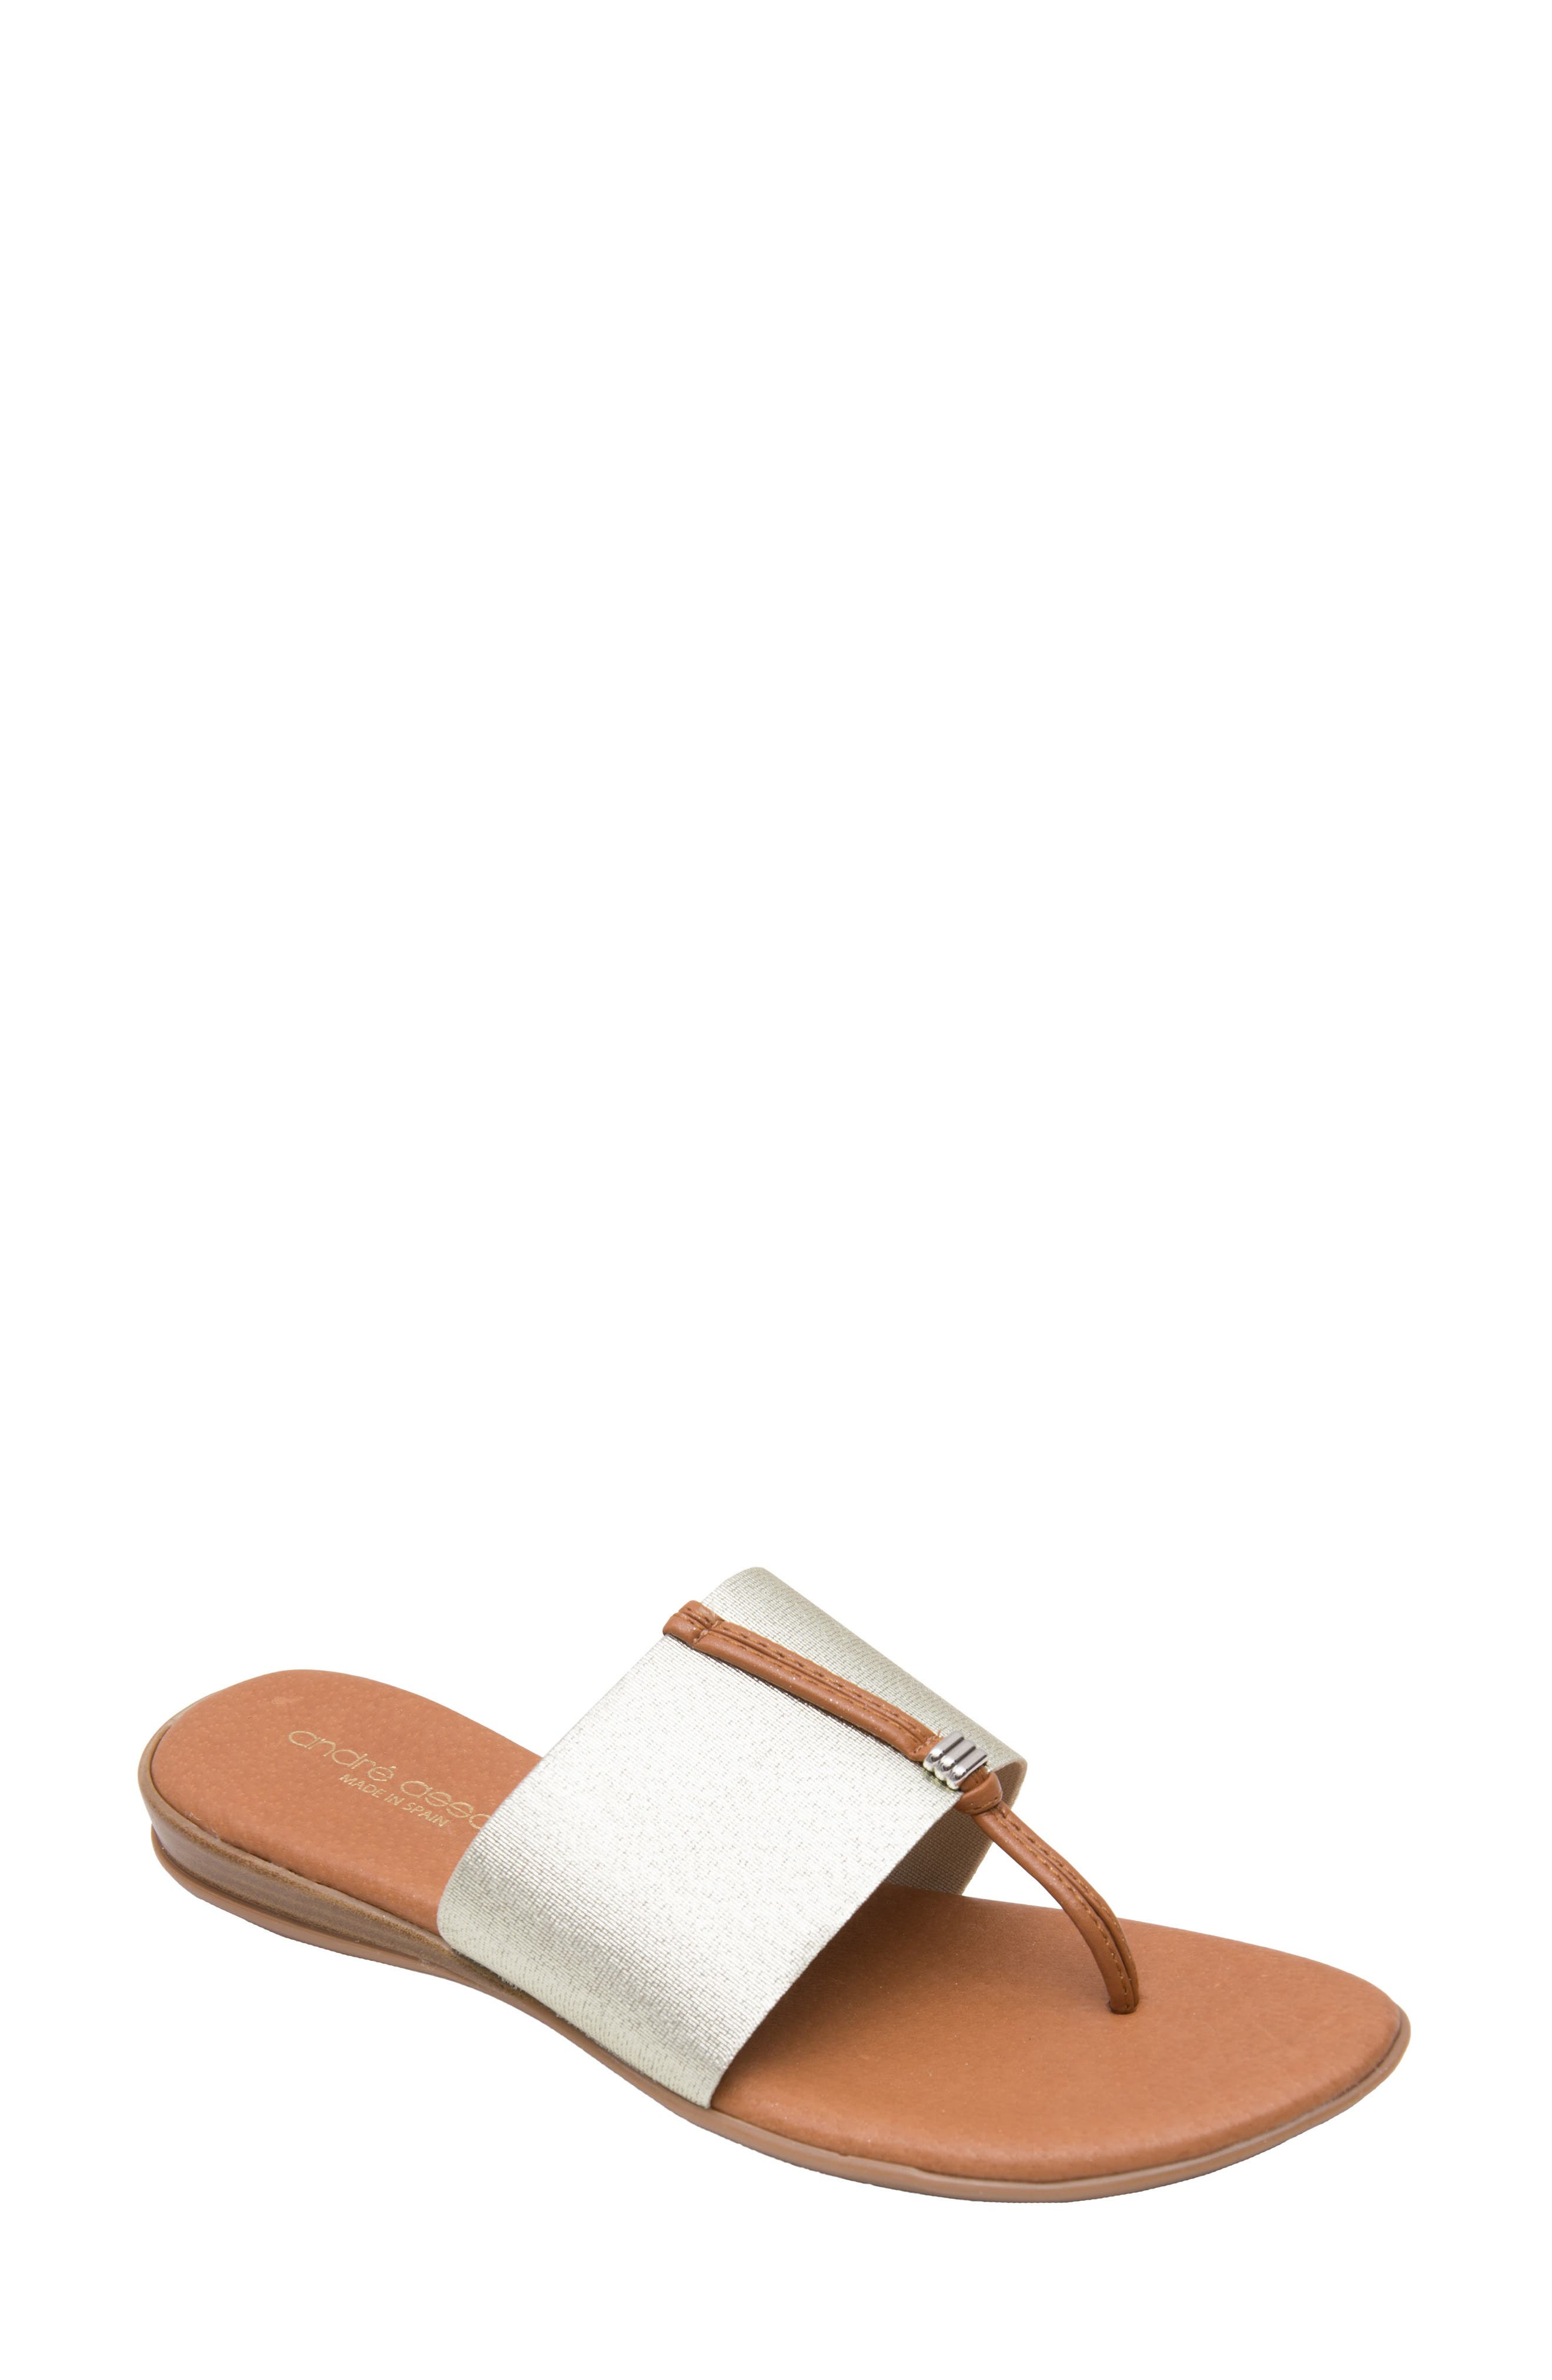 ANDRE ASSOUS Nice Sandal in Platino Fabric